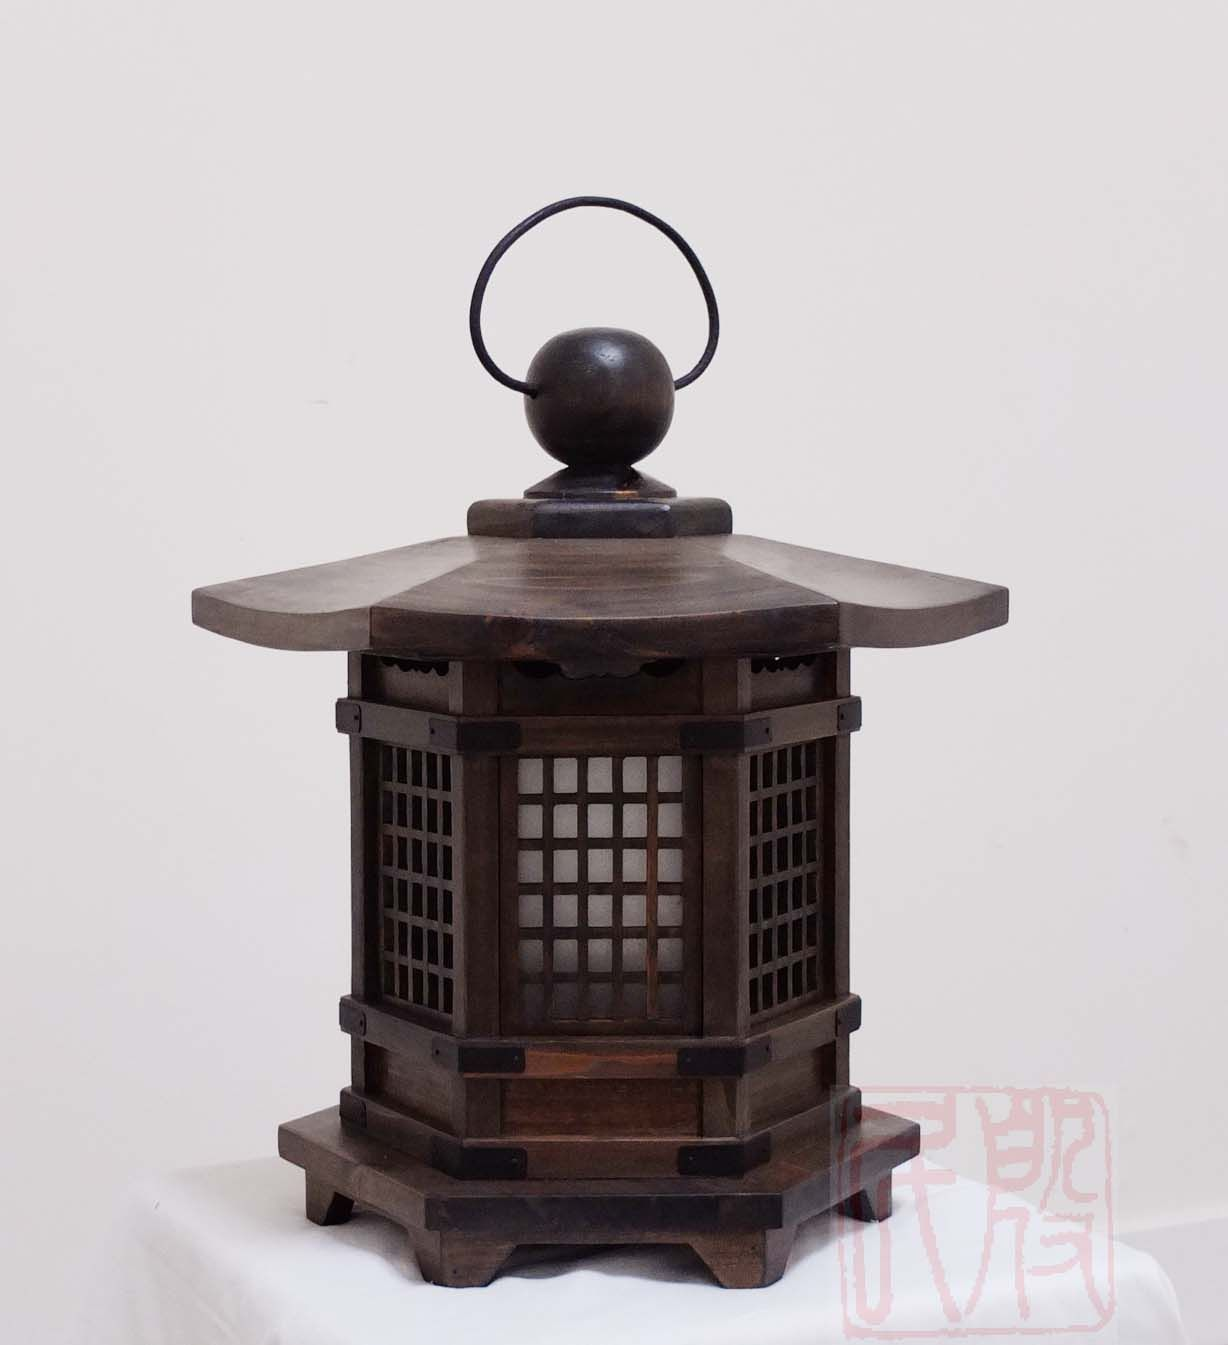 Antique Wood Japanese Lanterns Google Search Wooden Lamp In 2019